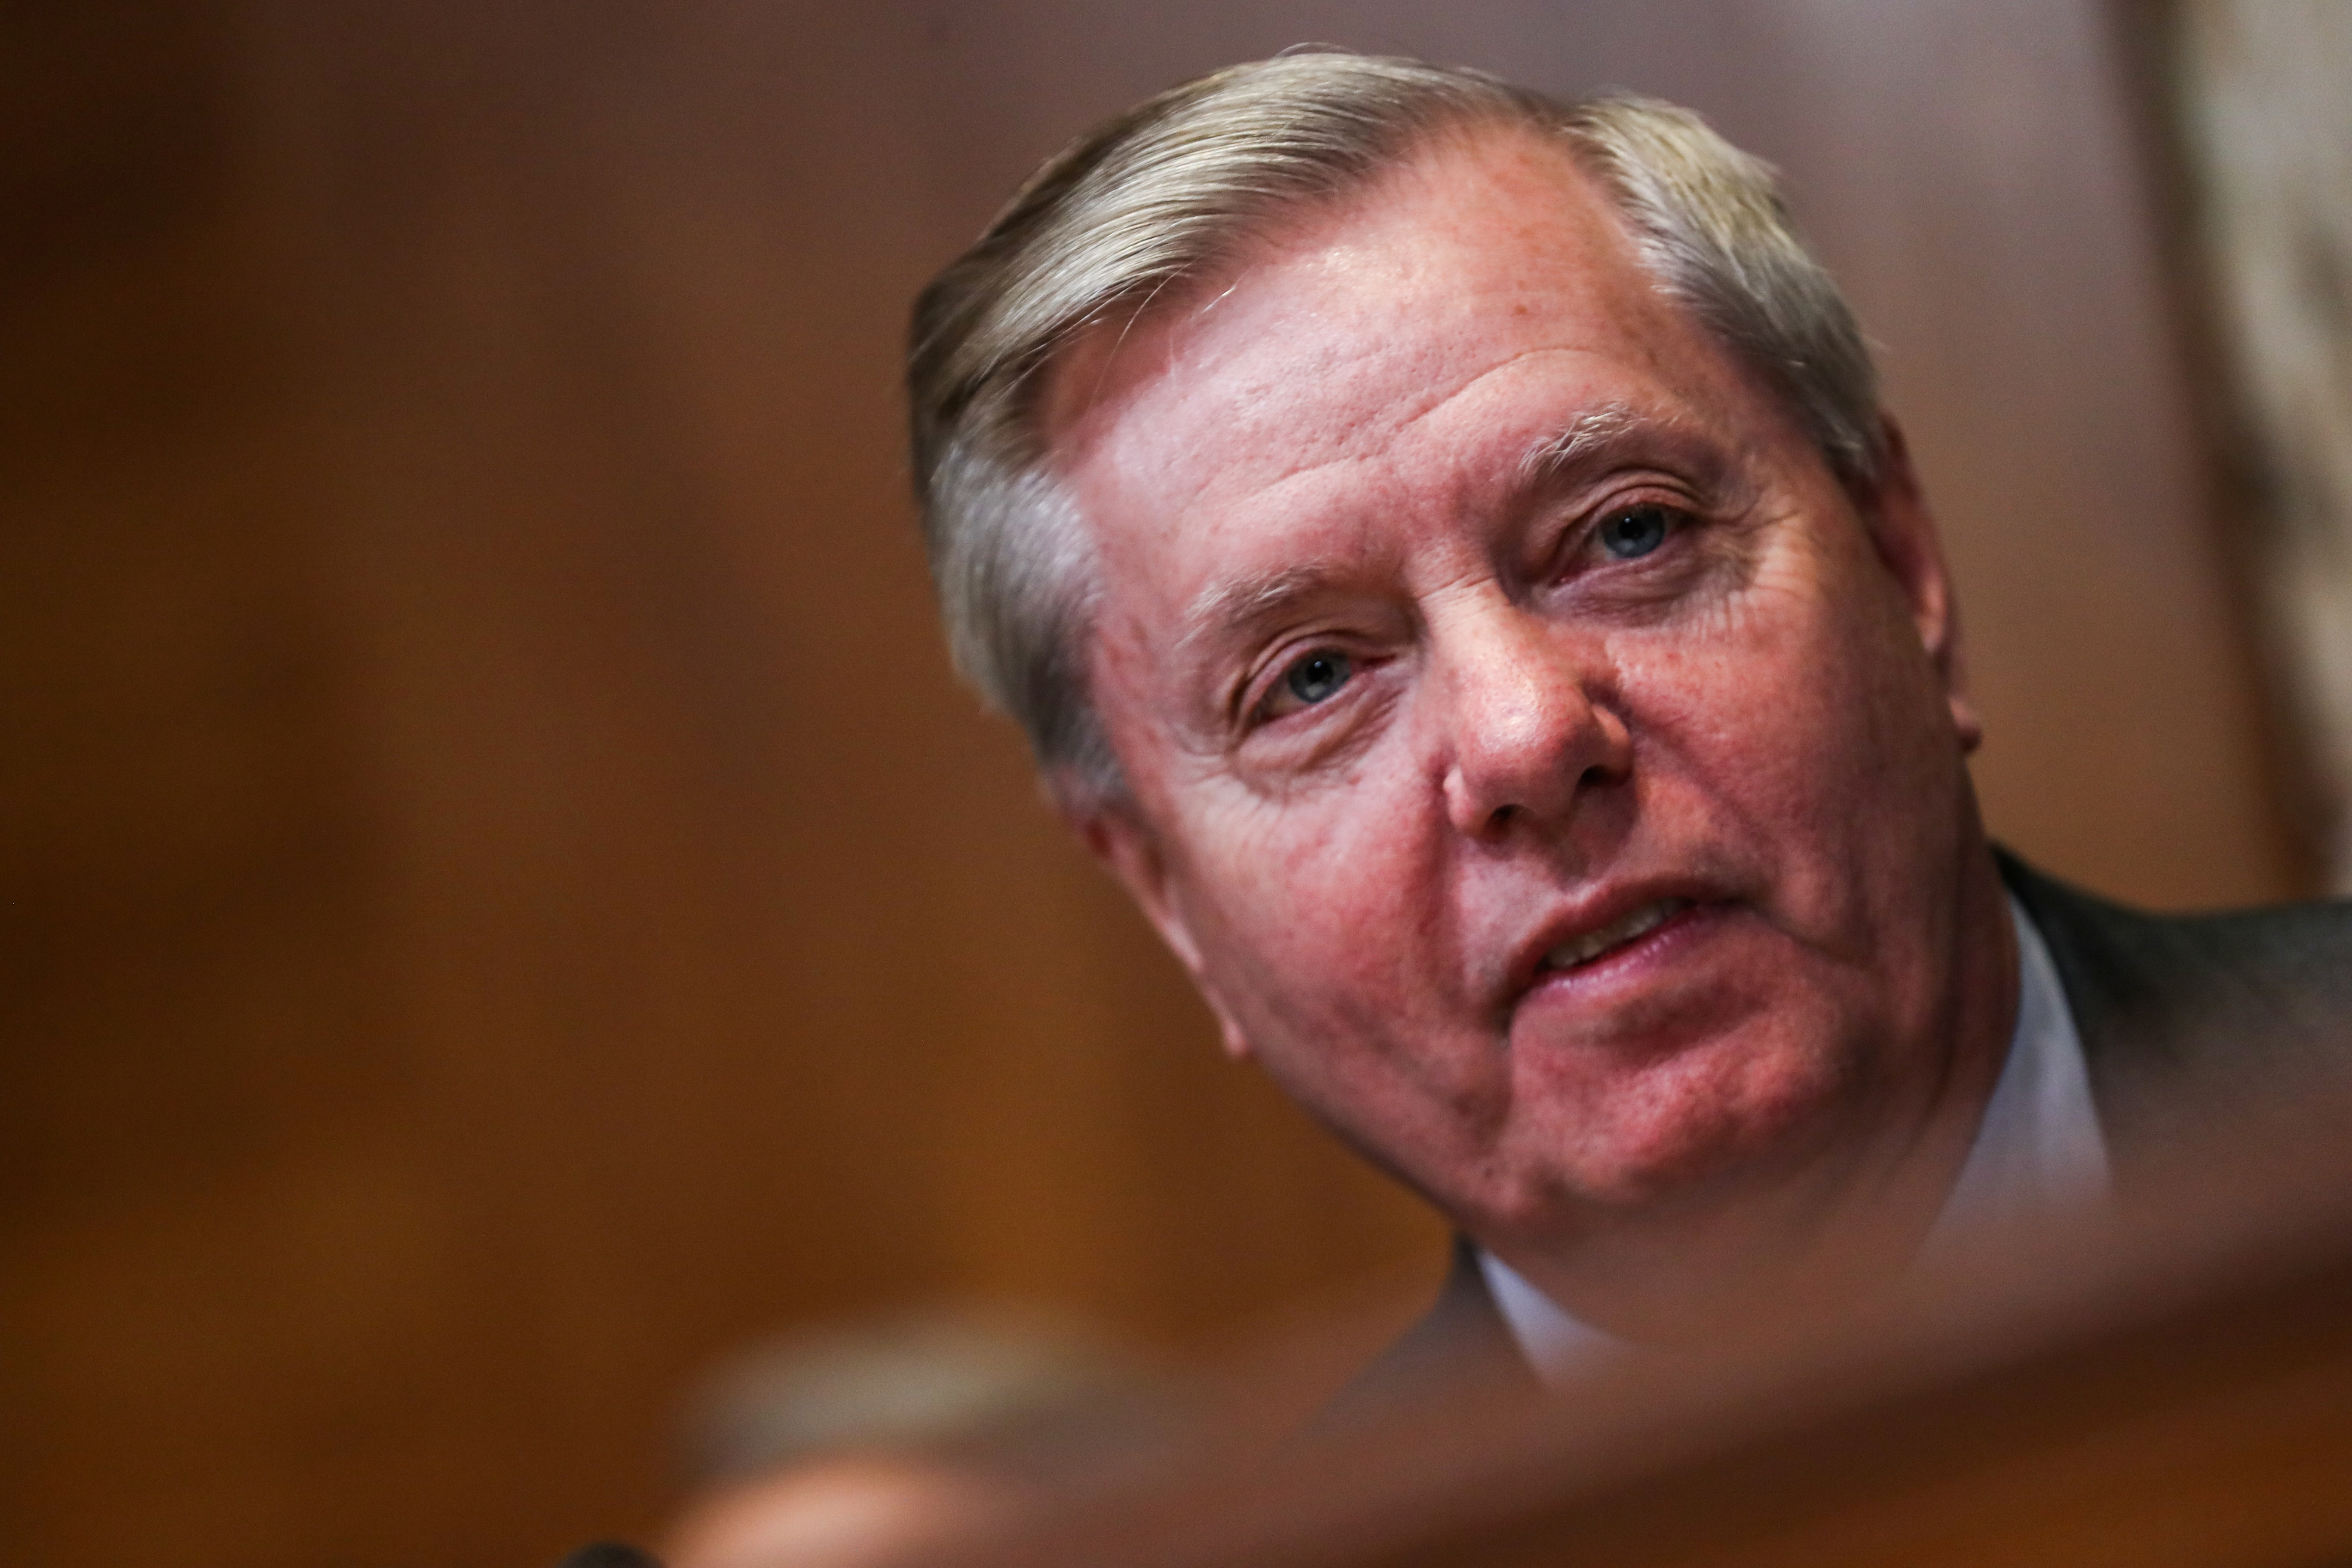 Chairman of the Senate Judiciary Committee Lindsey Graham (R-SC) speaks before a Senate Appropriations Subcommittee hearing on the proposed budget estimates and justification for FY2020 for the State Department on Capitol Hill in Washington, U.S., April 9, 2019. REUTERS/Jeenah Moon